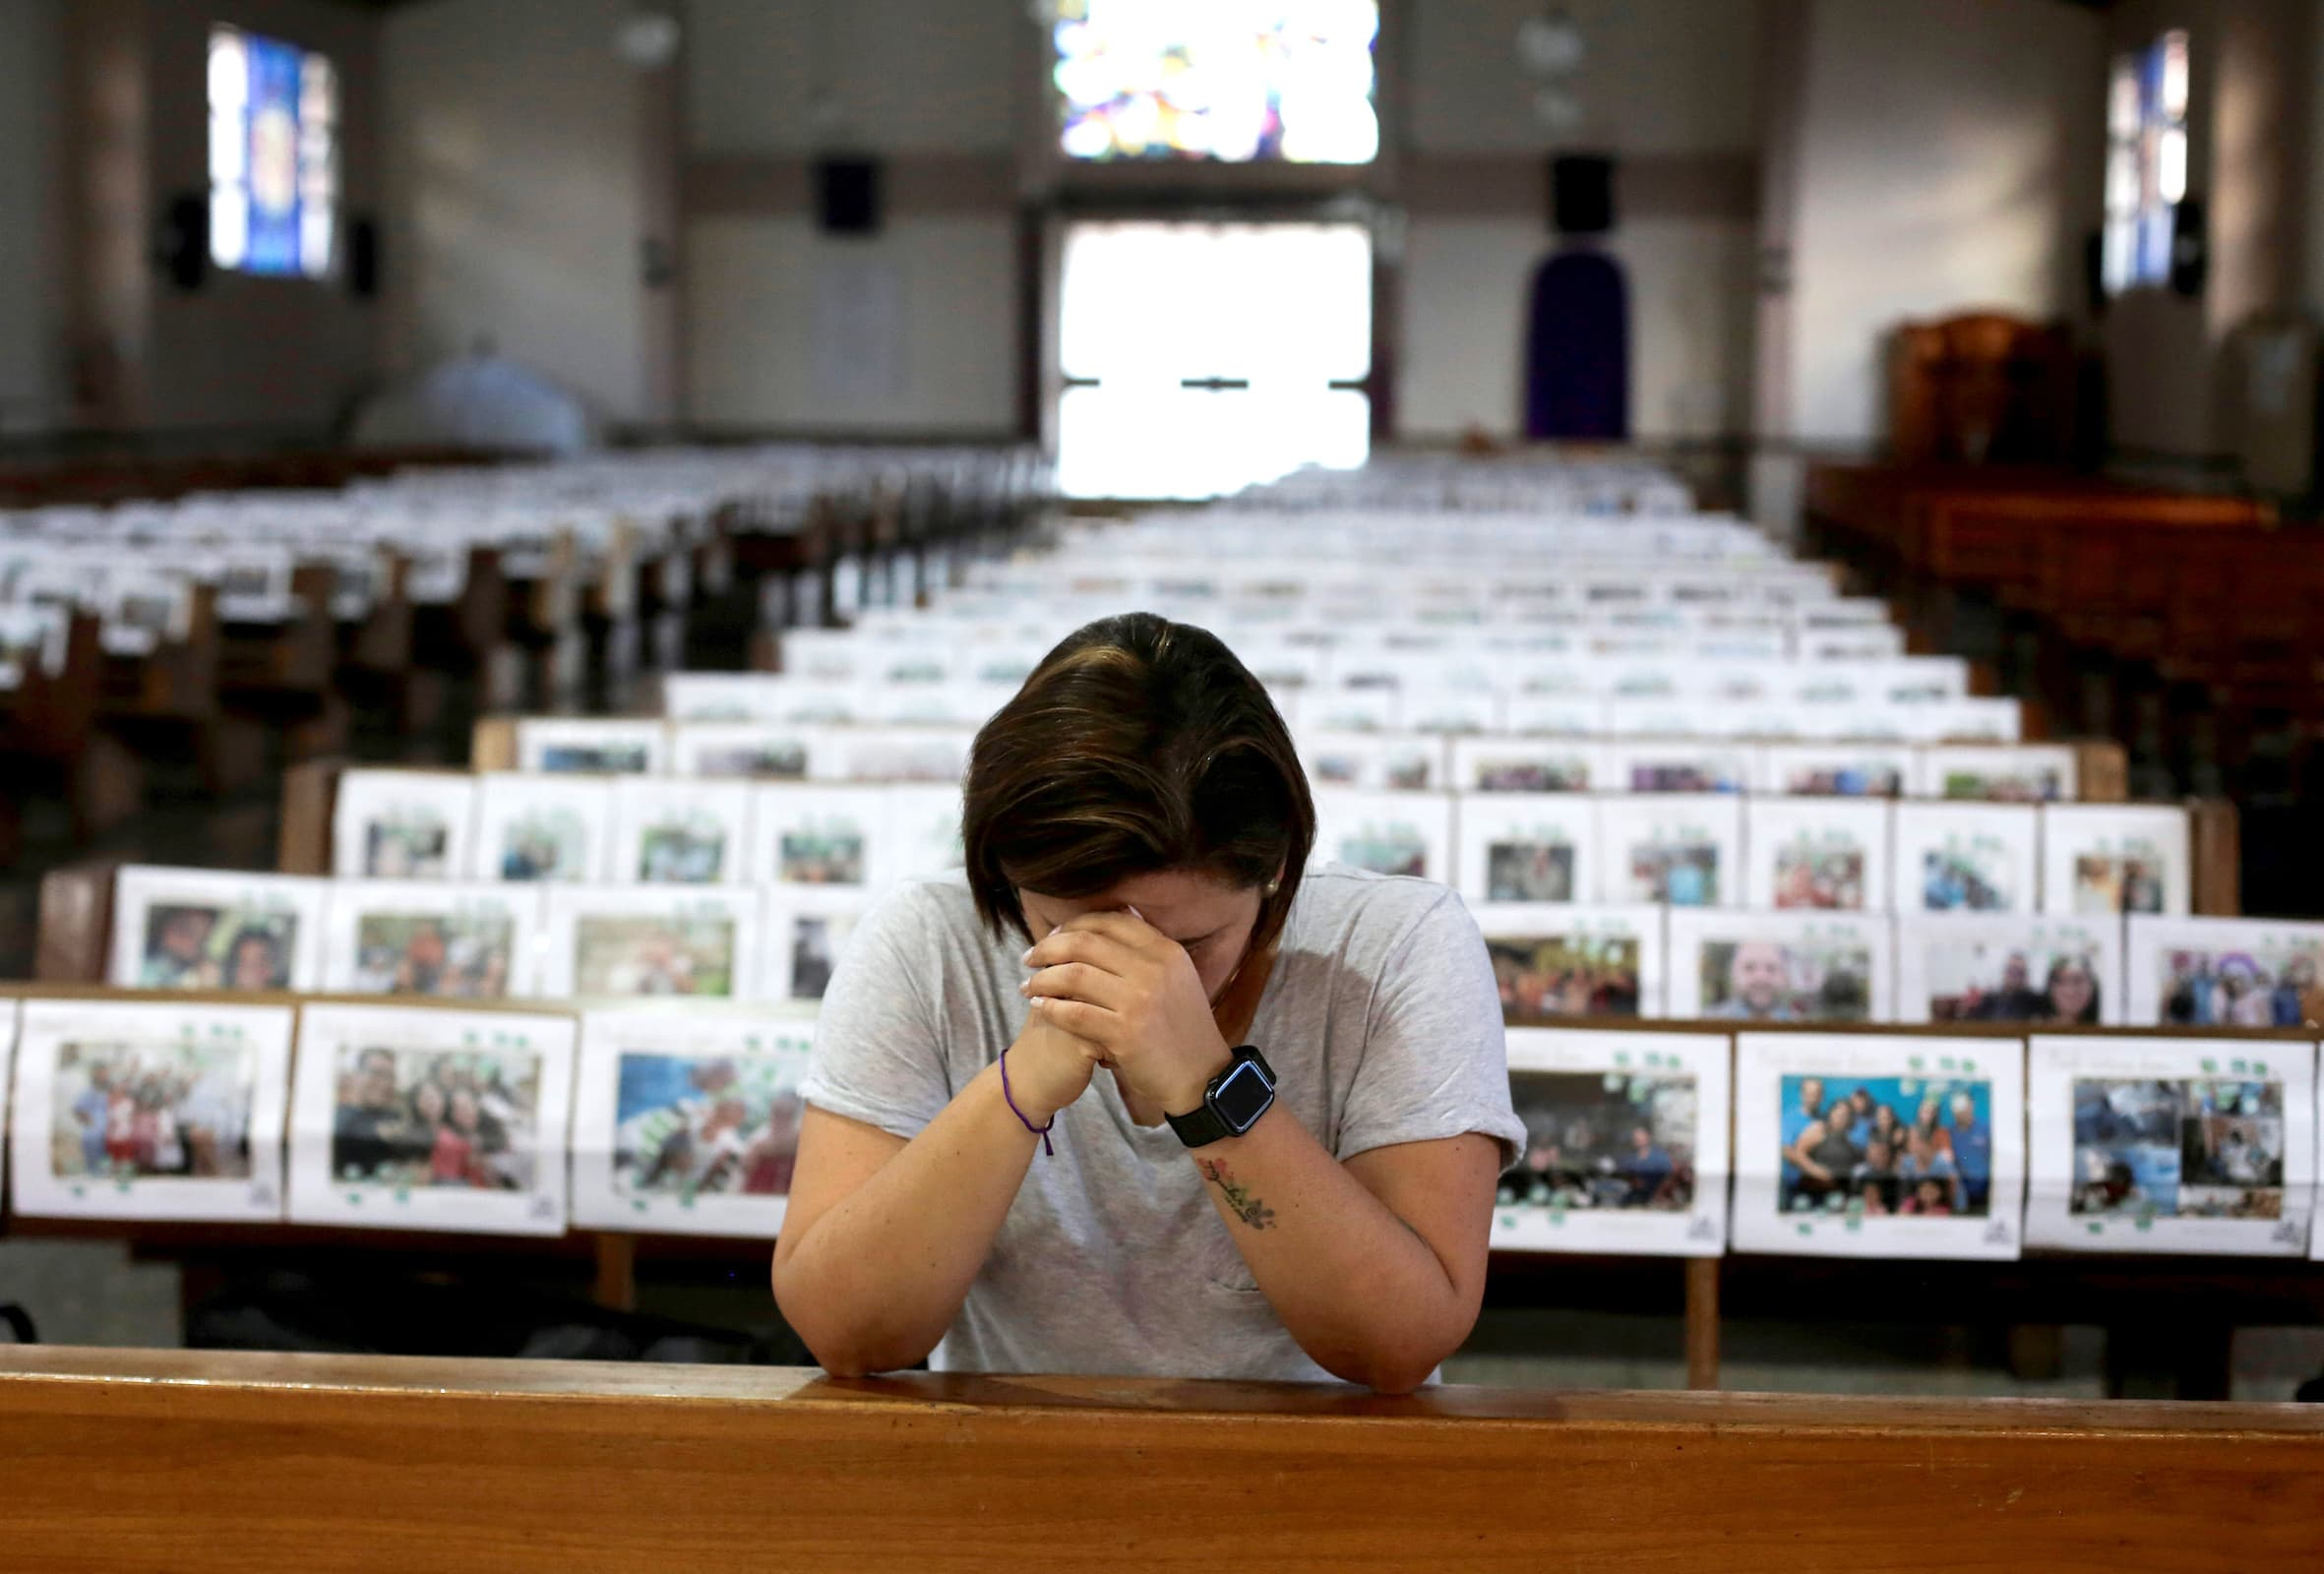 Catholic Adriana Brenes prays during a live streamed mass as photos of the faithful are displayed over the church's benches at the Nuestra Senora de Fatima church, as the spread of the coronavirus disease (COVID-19) continues, in San Jose, Costa Rica April 8, 2020. — Reuters